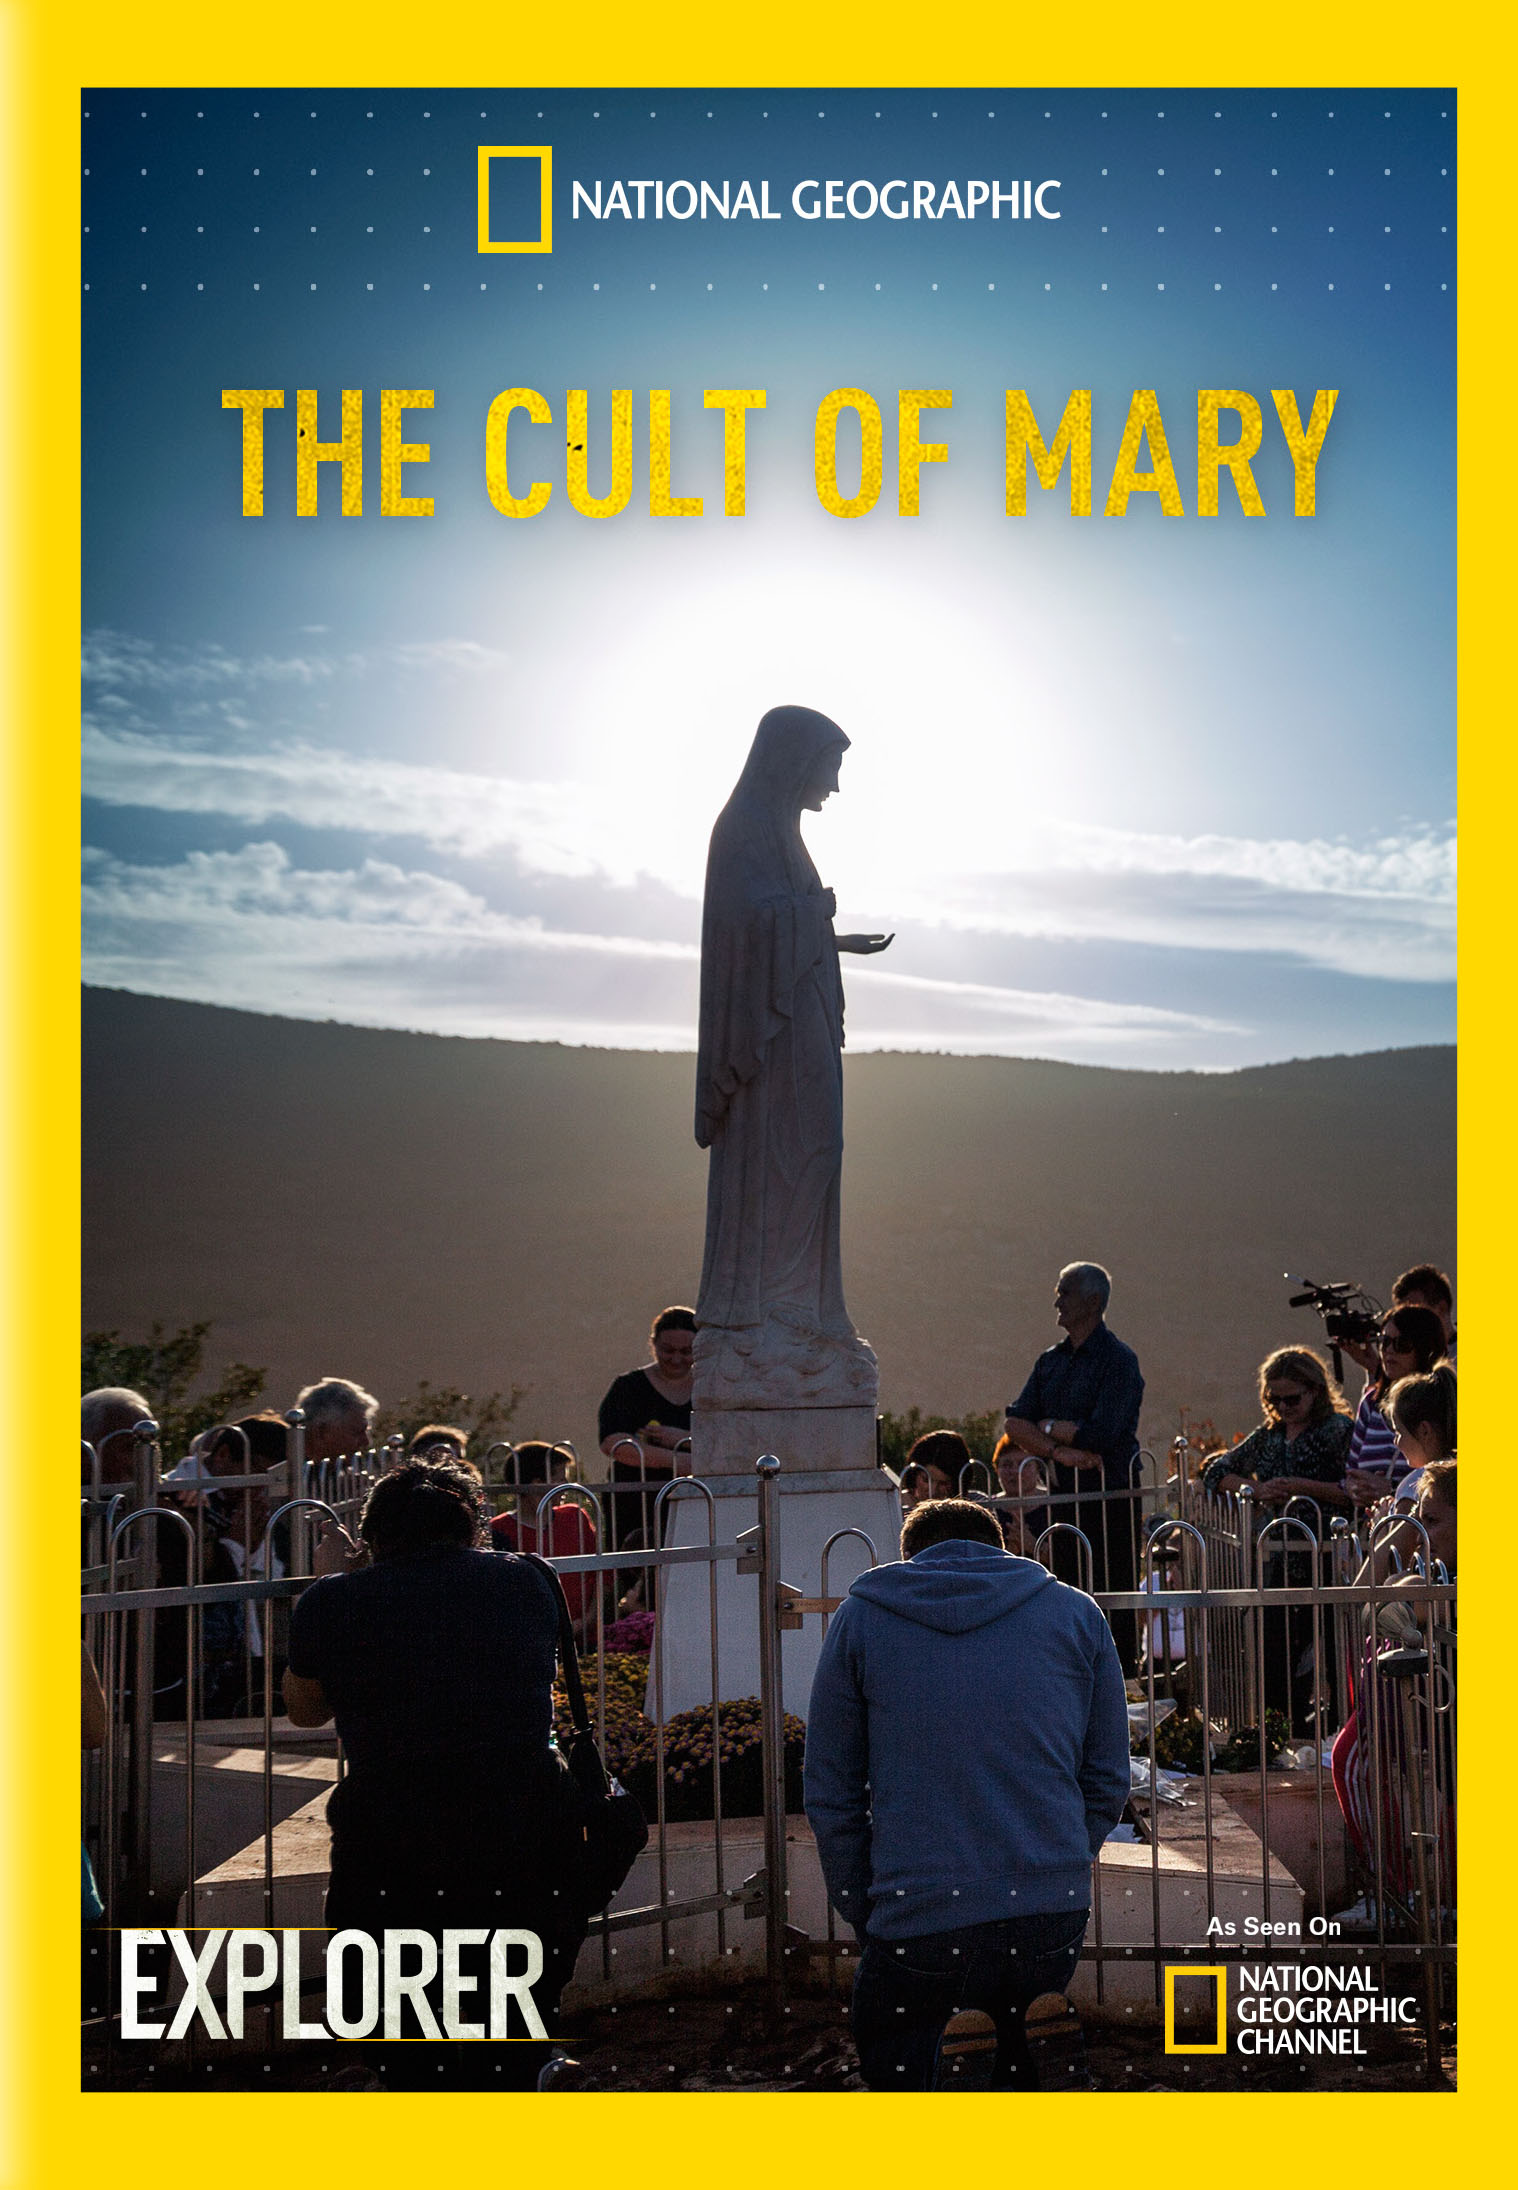 National Geographic Explorer: The Cult of Mary